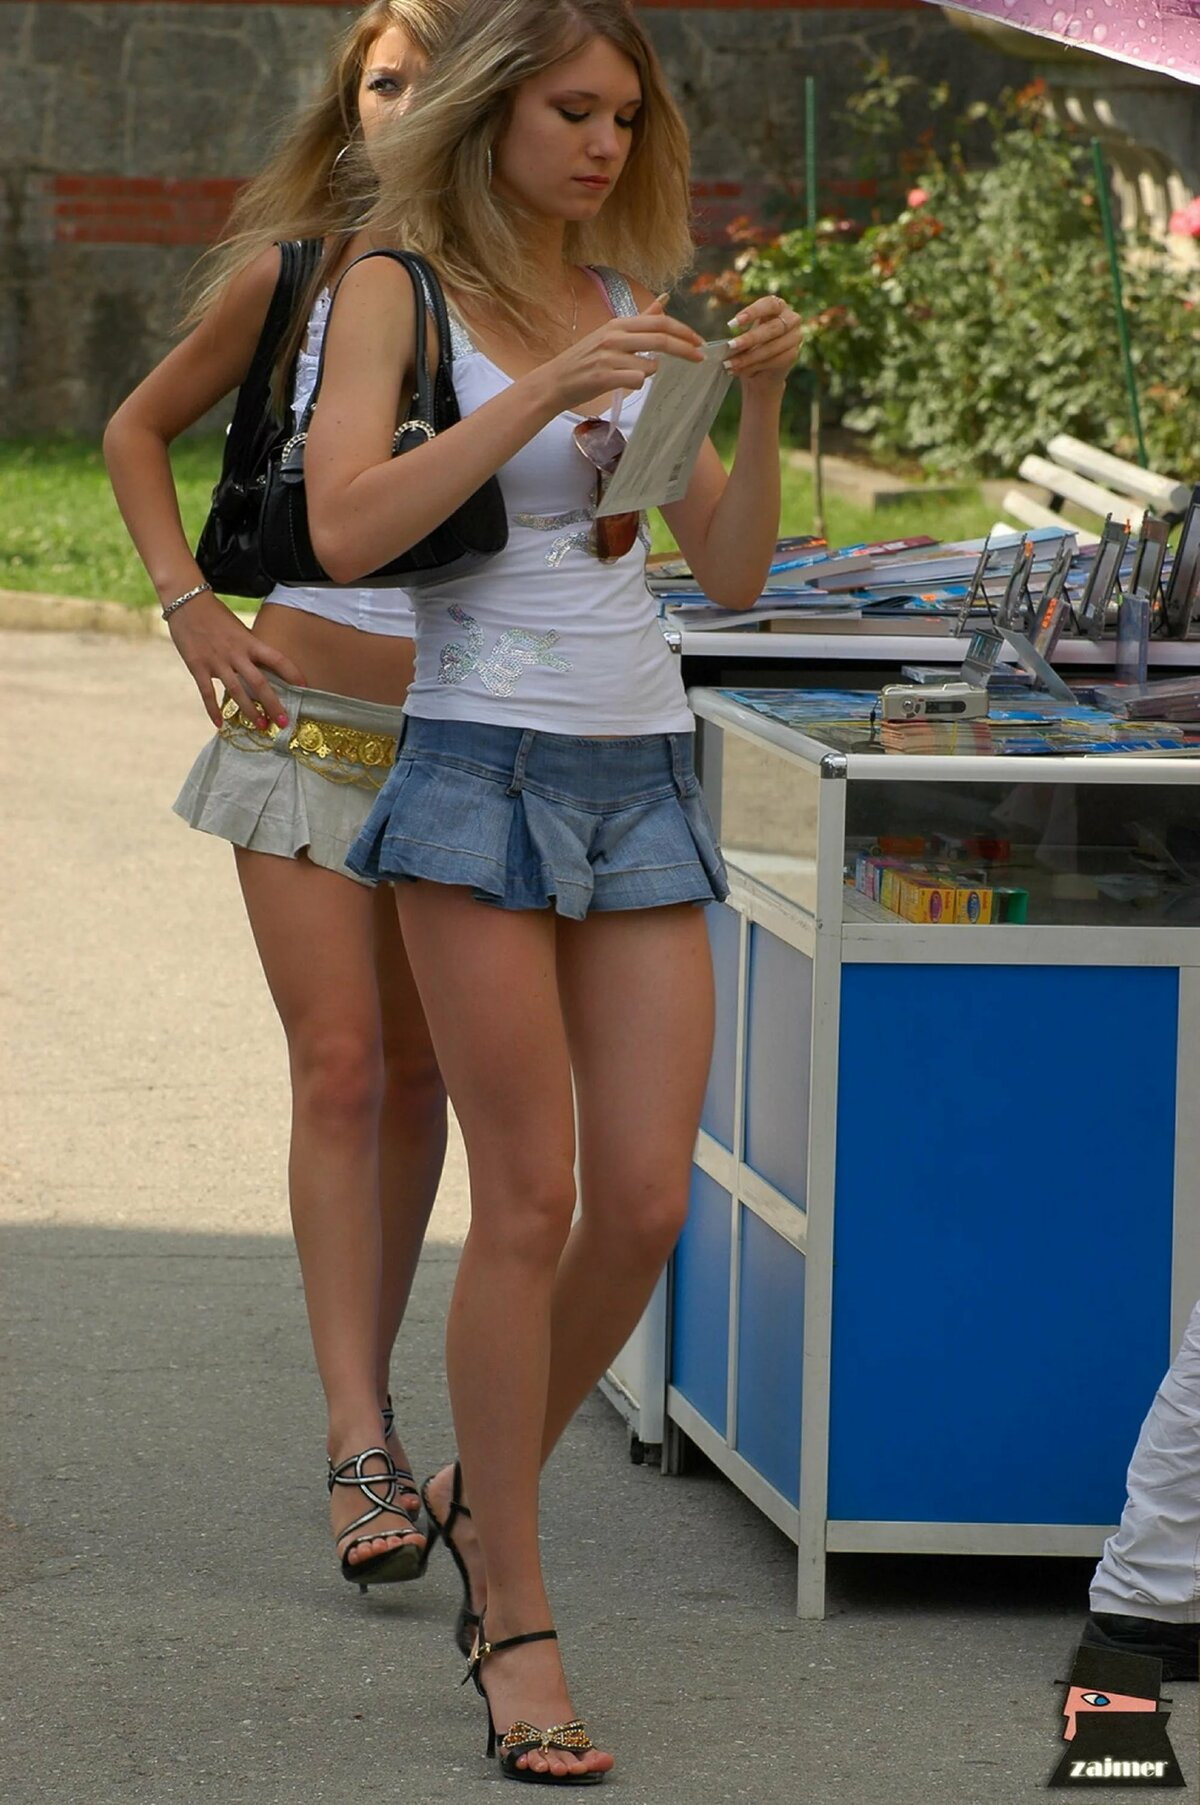 hot-young-girls-in-mini-skirts-and-sister-swimming